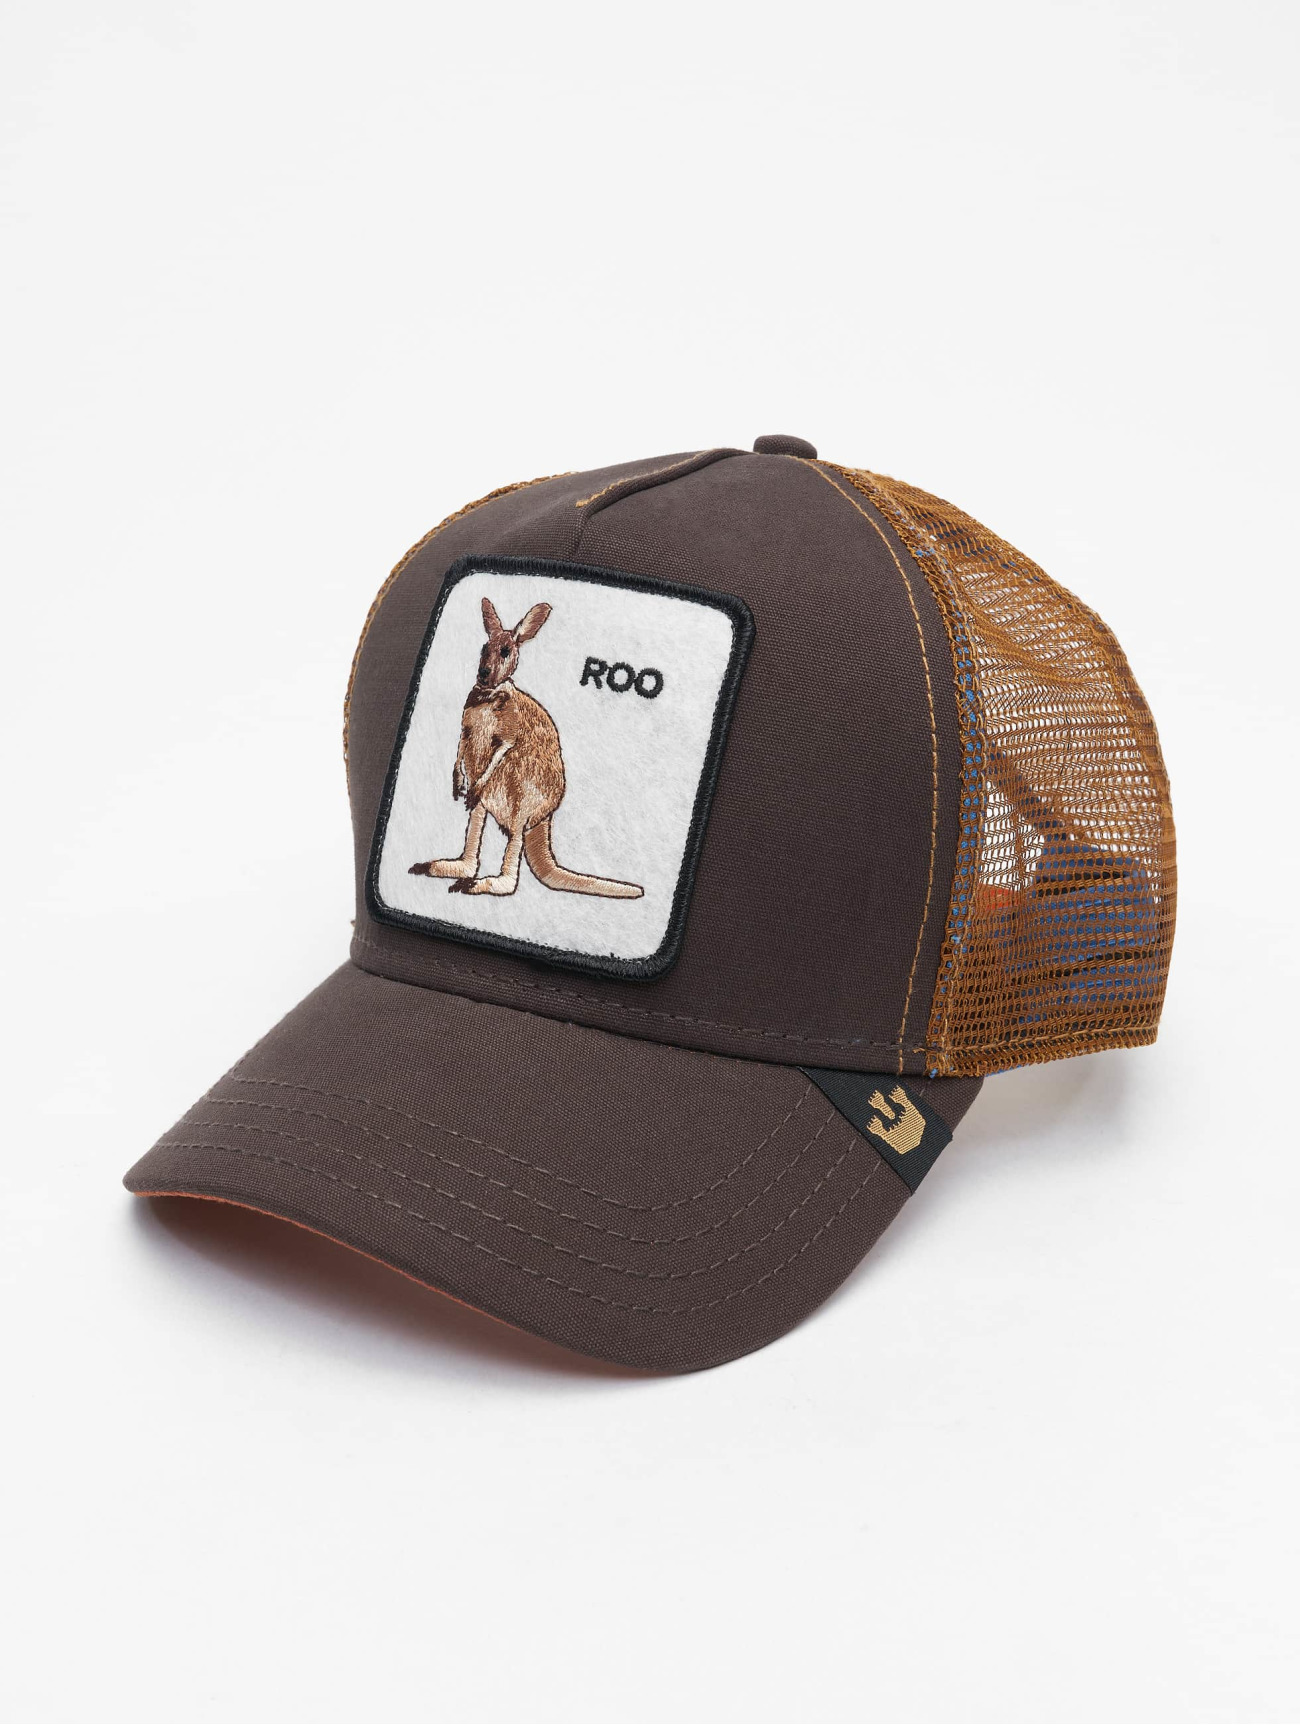 Goorin Bros.  Roo   brun Homme Casquette Fitted  561311 Homme Casquettes